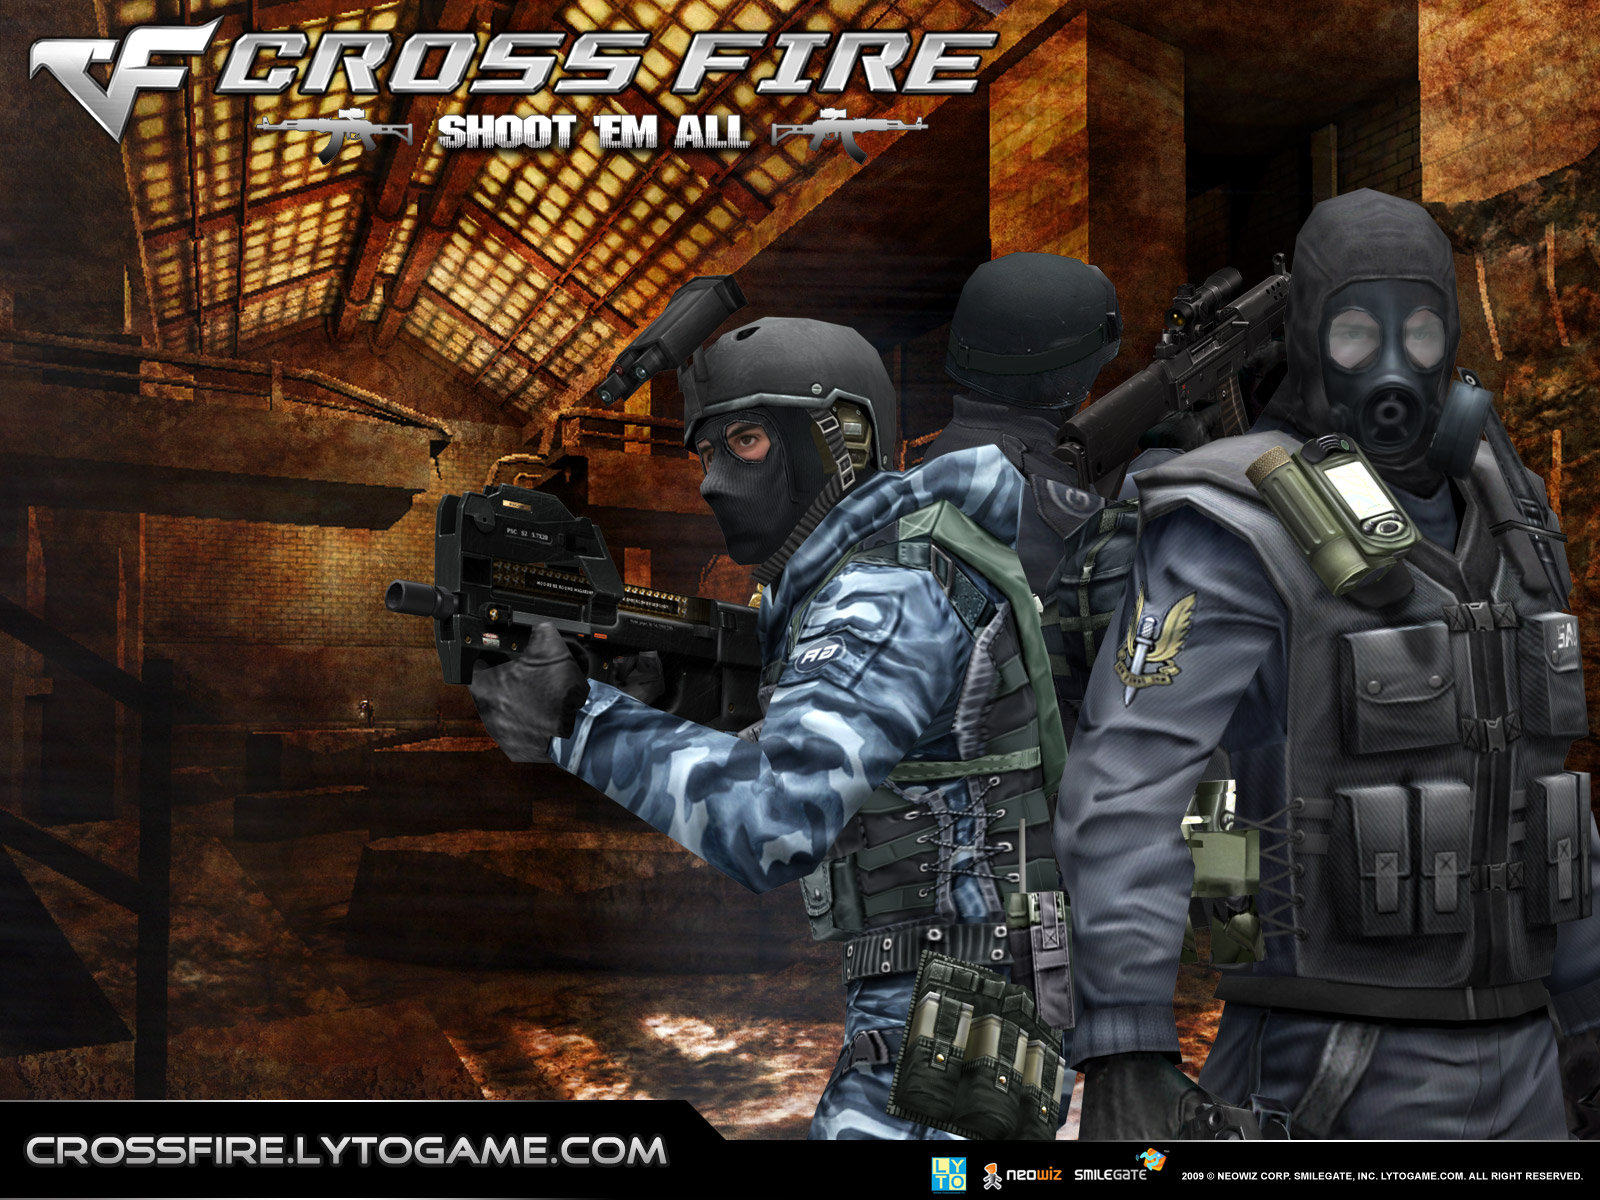 Game Wallpaper | Download Wallpaper: CrossFire Wallpaper Game Online